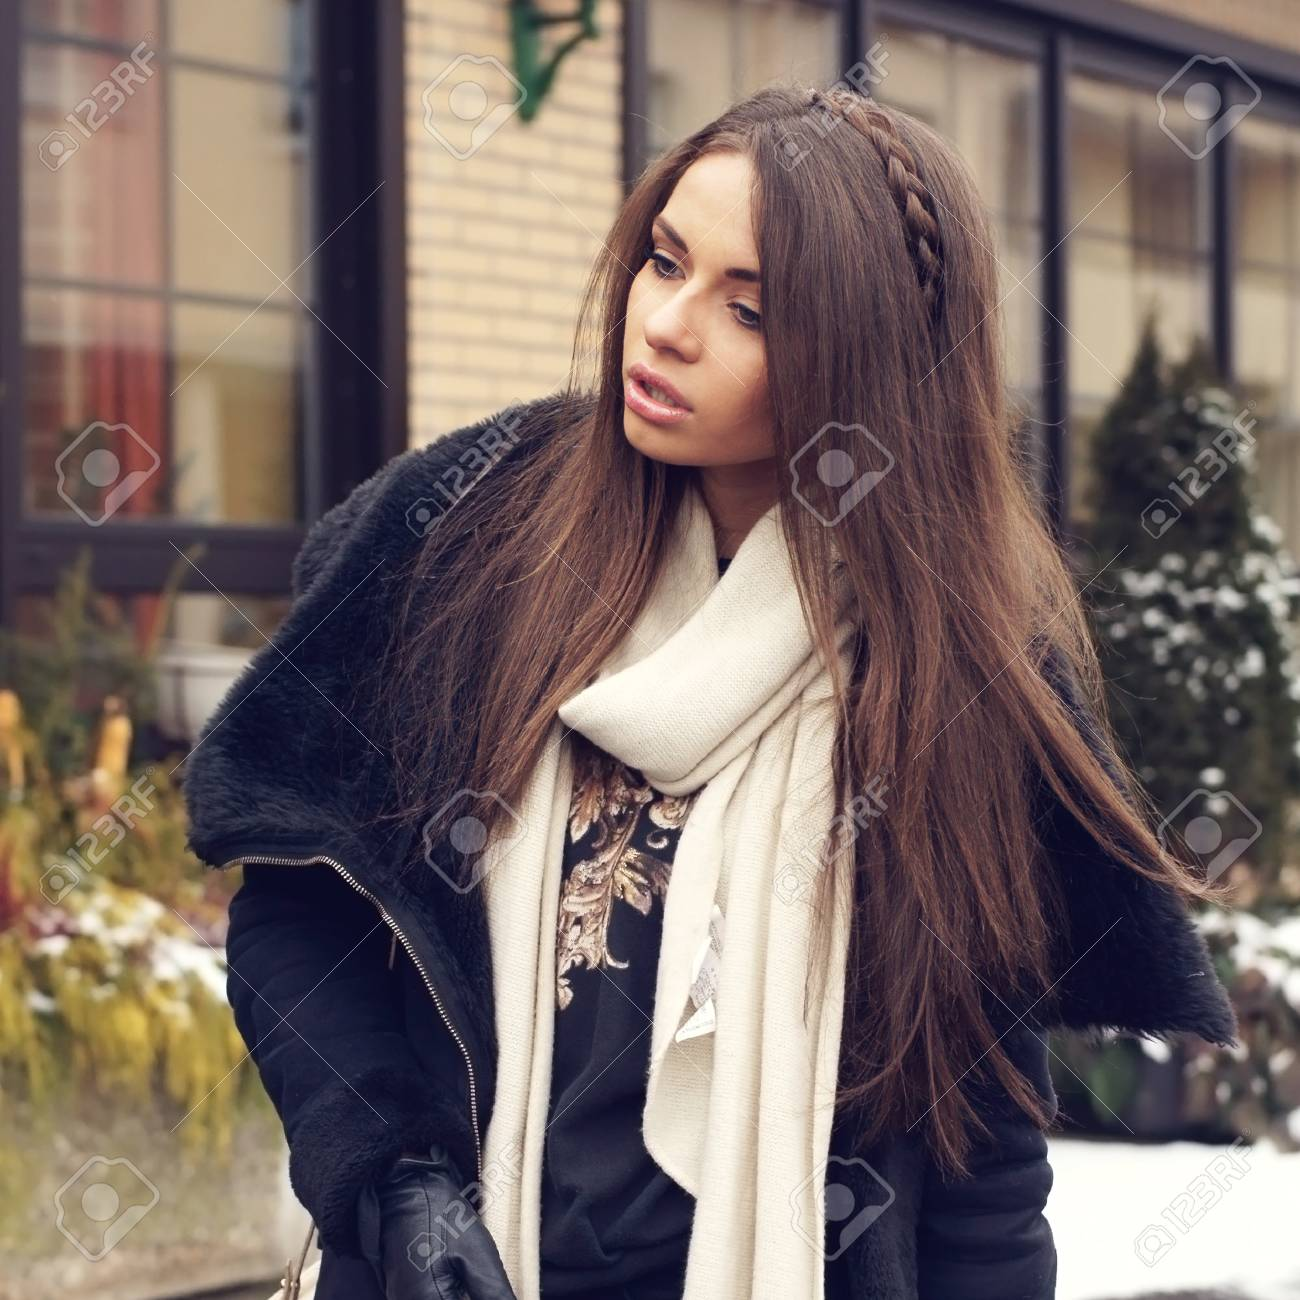 a4e438caa Portrait Of Stylish Young Girl In Black Clothes Stock Photo